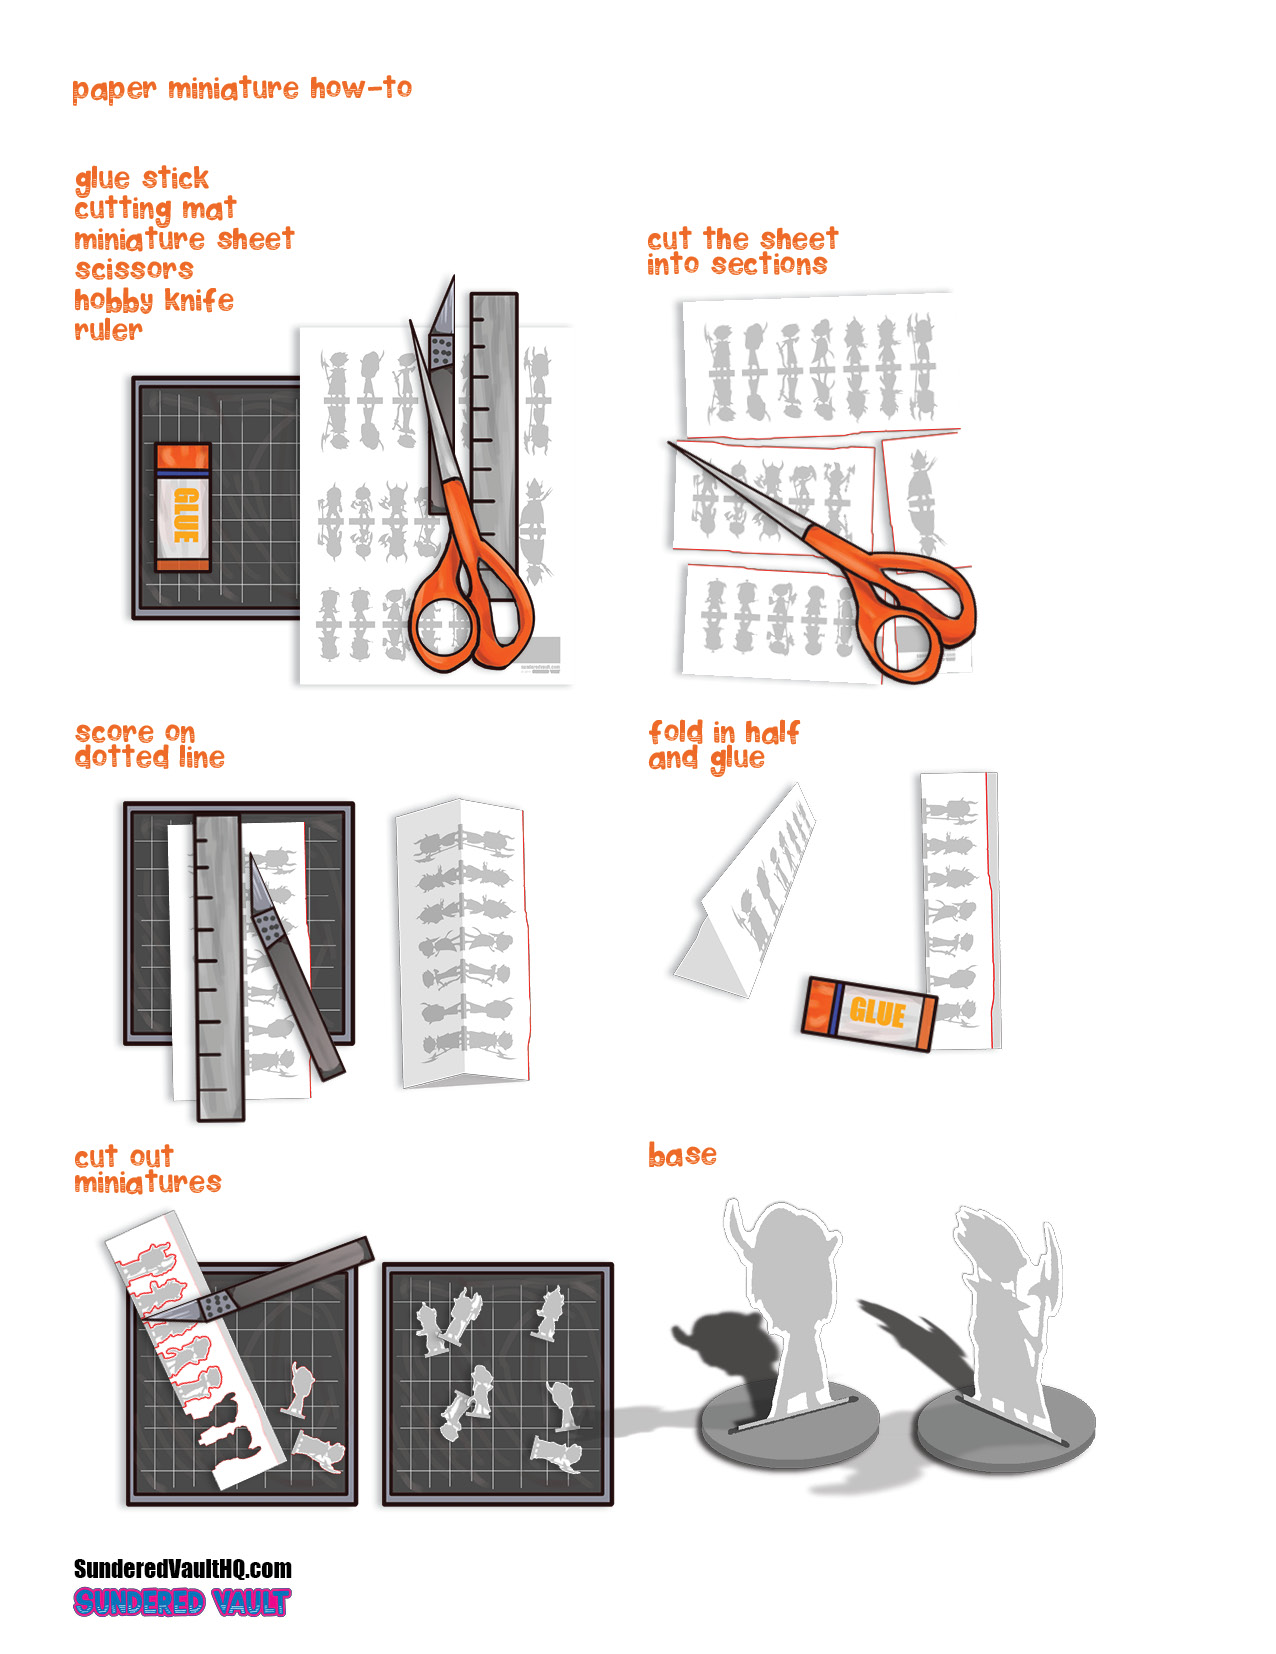 infographic on paper miniature assembly, cut out sections, score on doted line, glue front and back together, cut out individual miniatures, base, enjoy